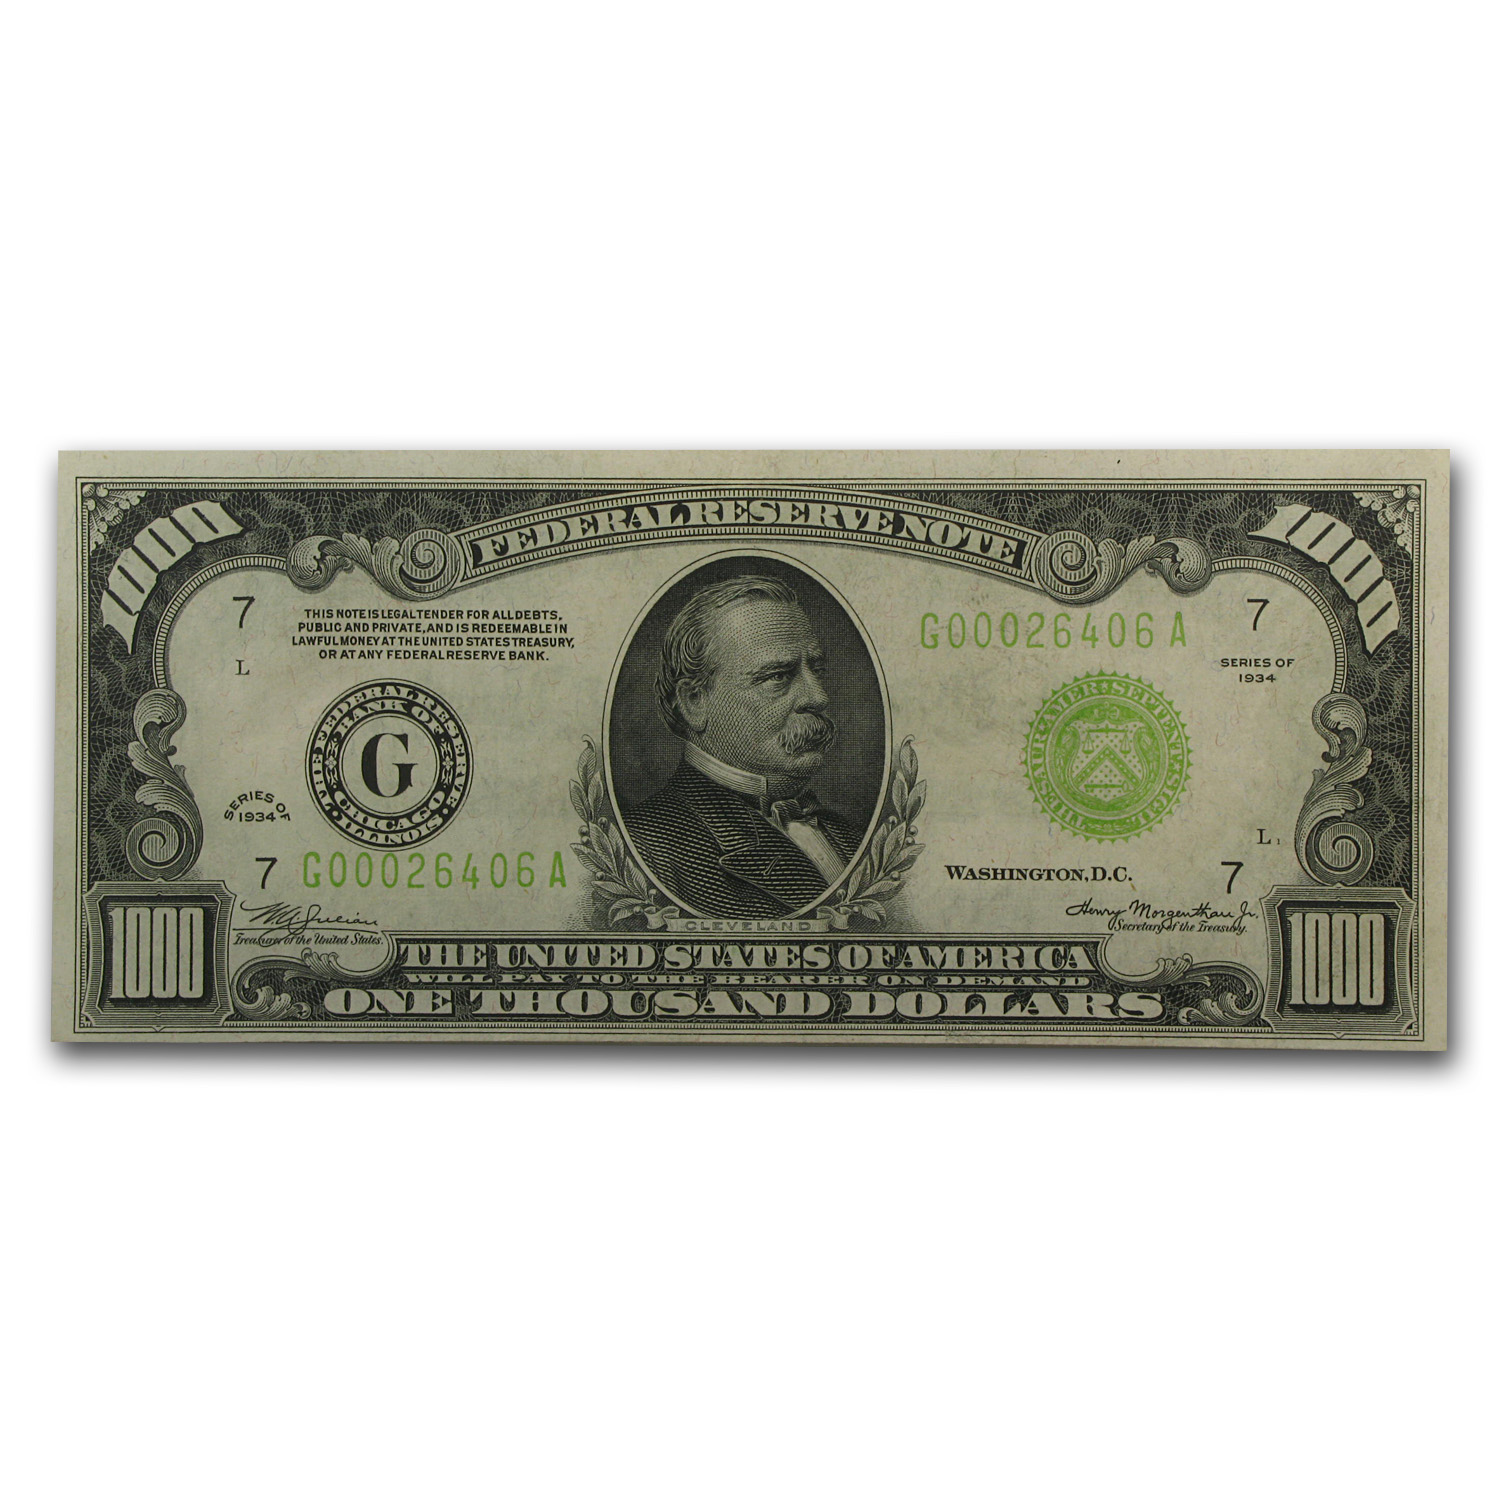 1934 (G-Chicago) $1,000 FRN (Crisp Uncirculated) LGS